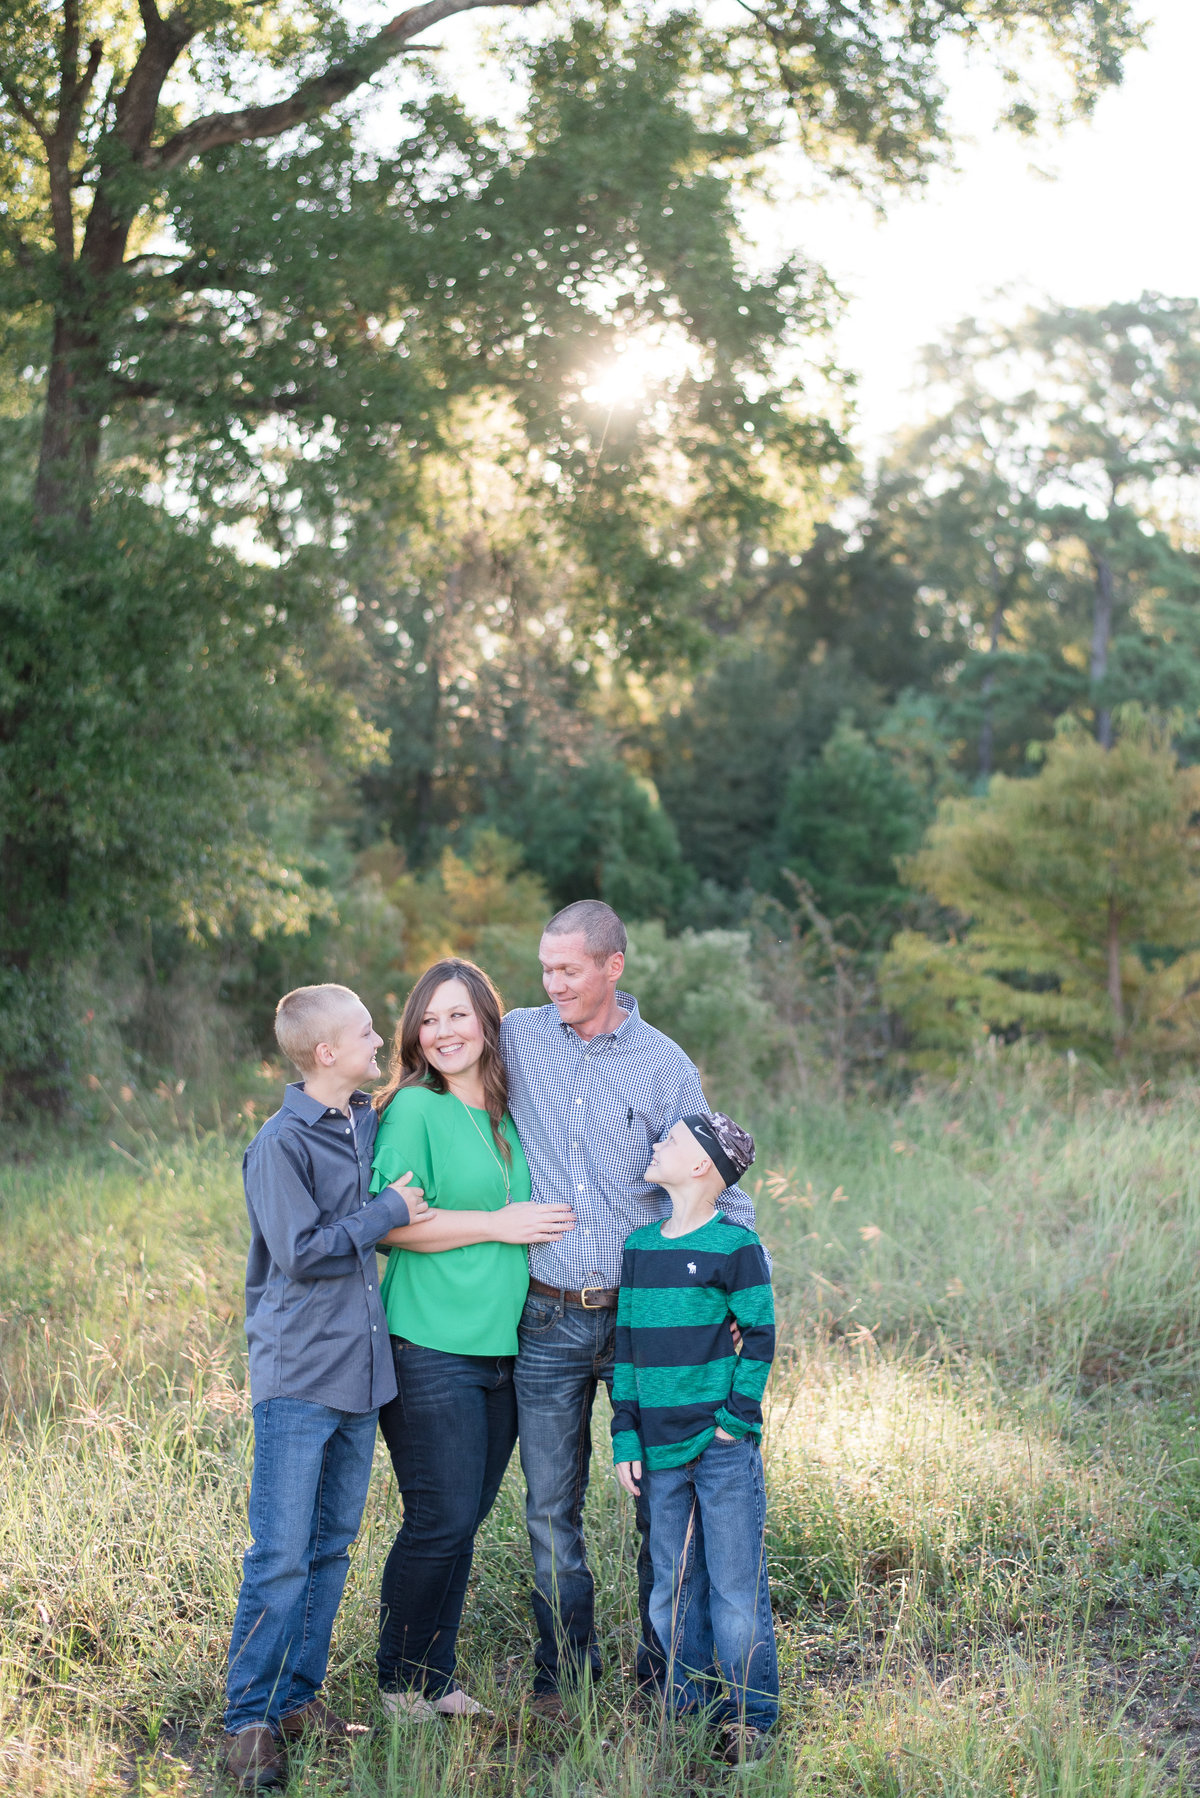 KingwoodFamilyPhotographer_Brewer-16